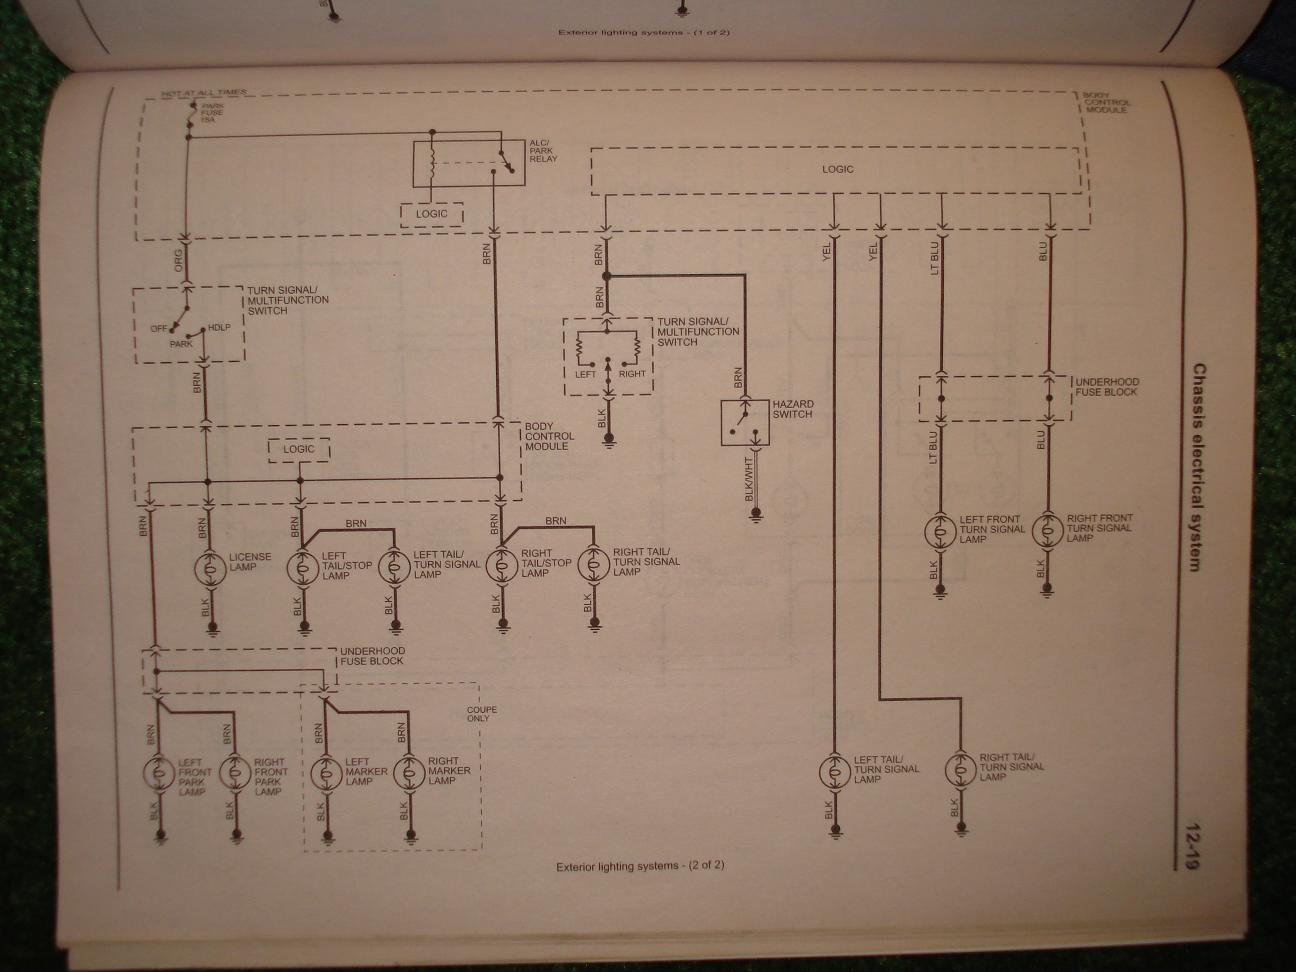 2004 saturn ion drl wiring diagram - wiring diagram schematics 2007 saturn ion electrical diagram  wiring diagram schematics